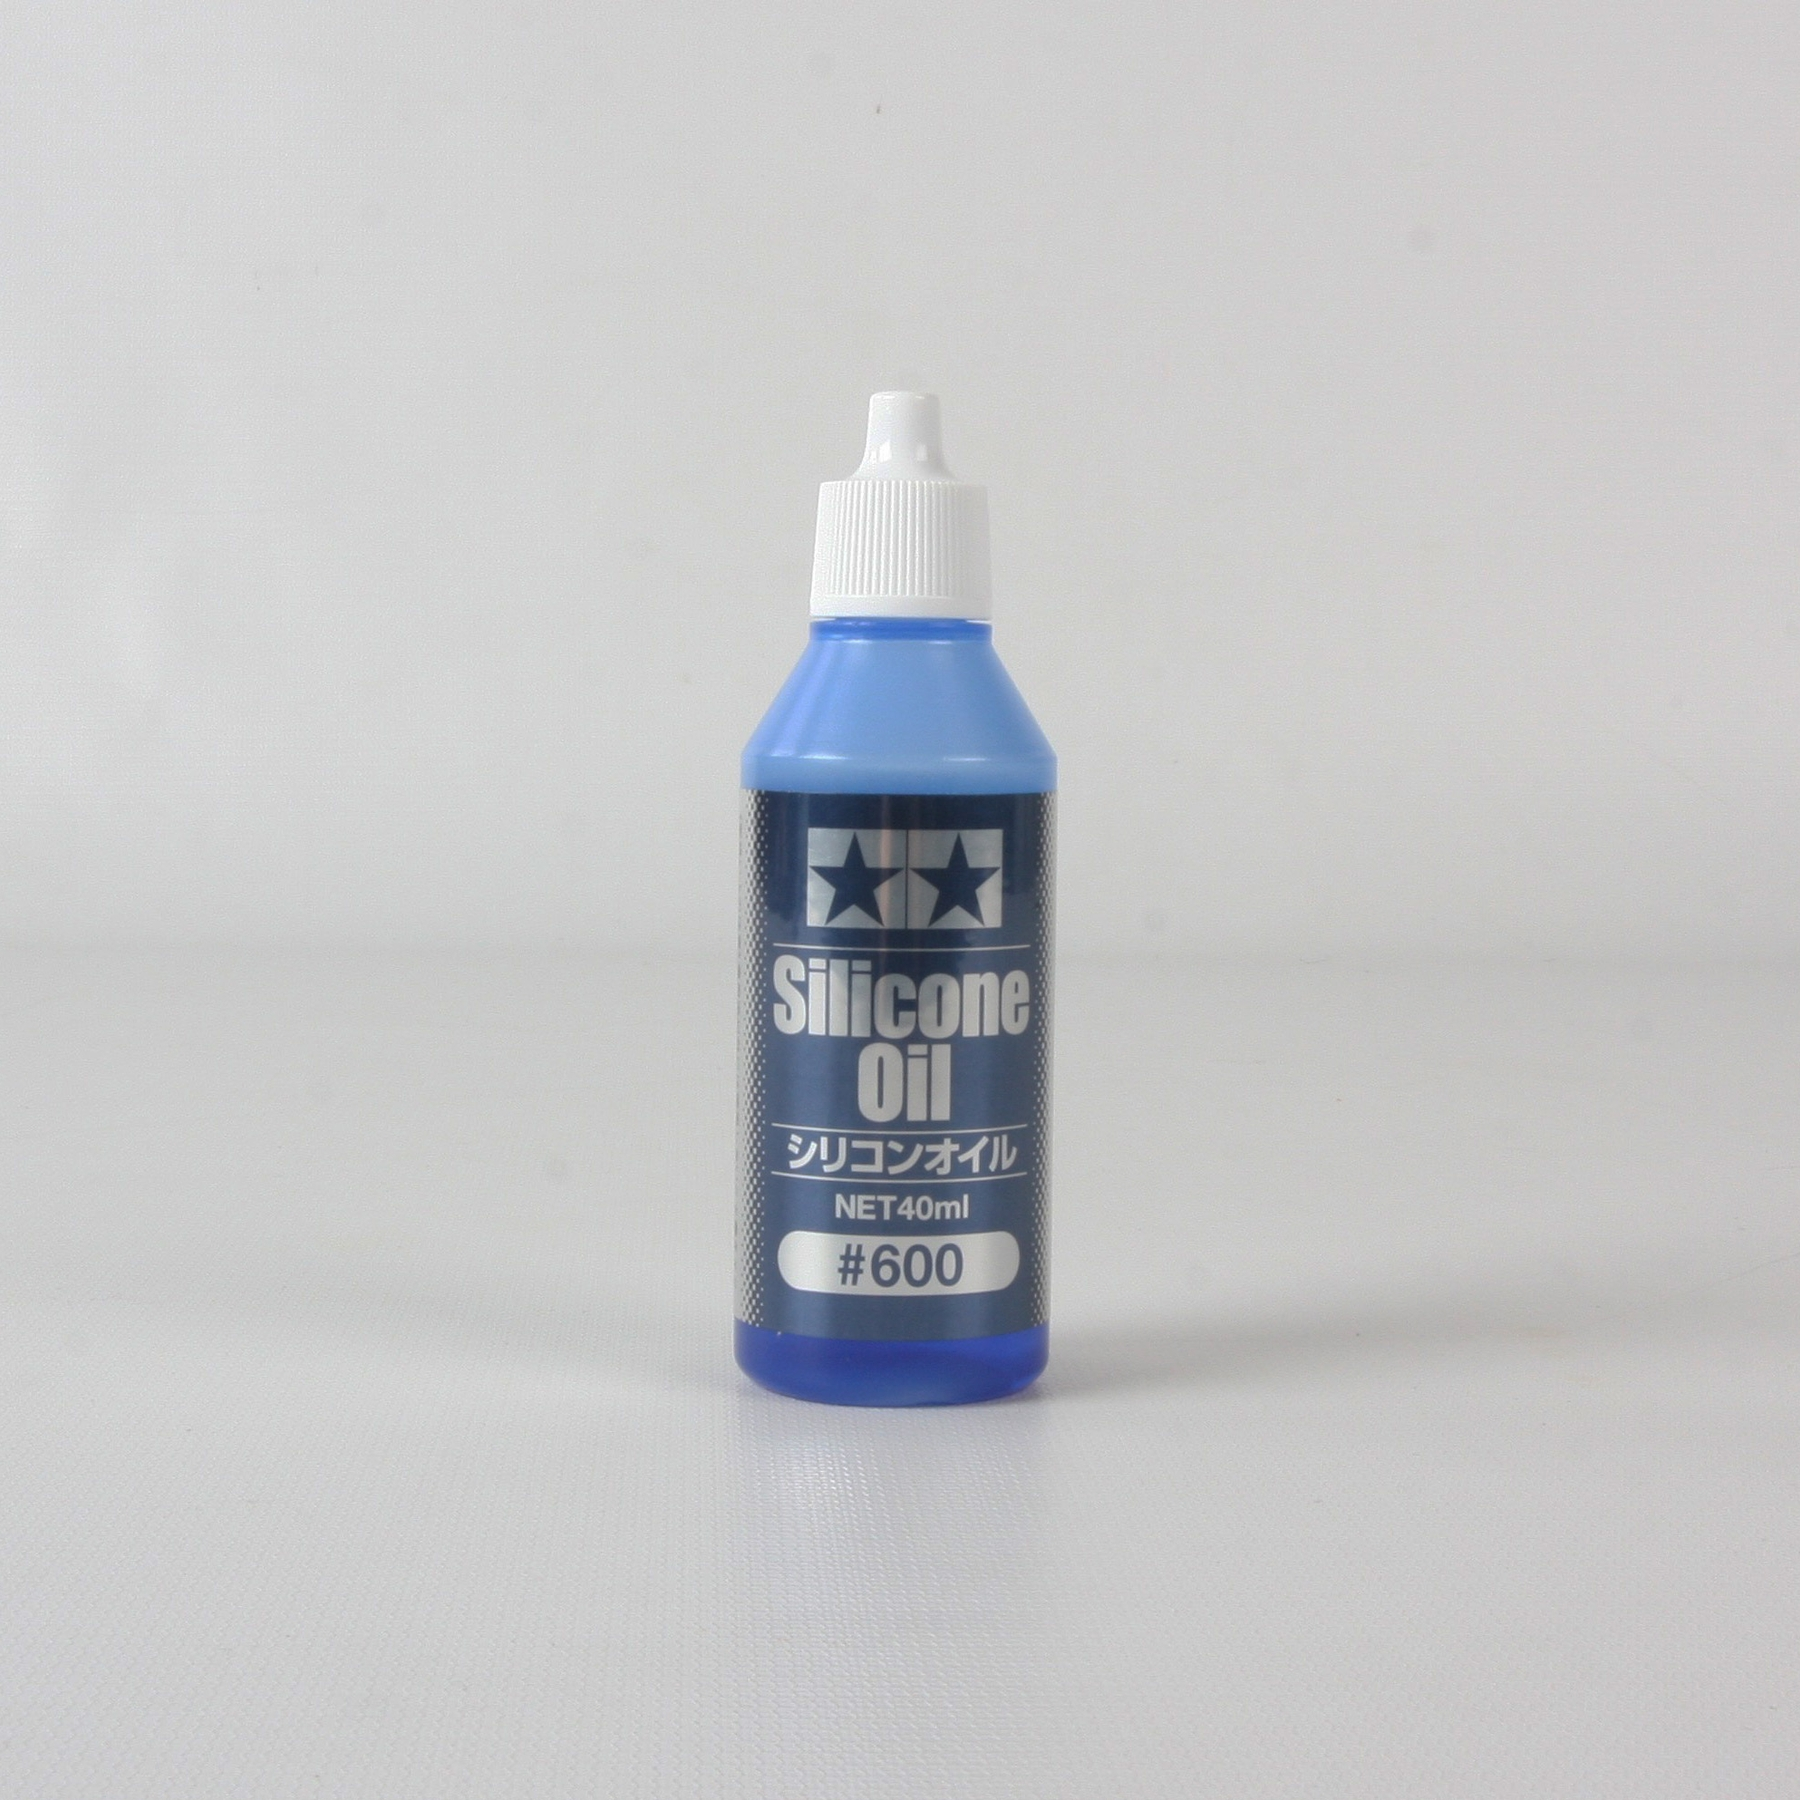 Rc Silicone Oil #600